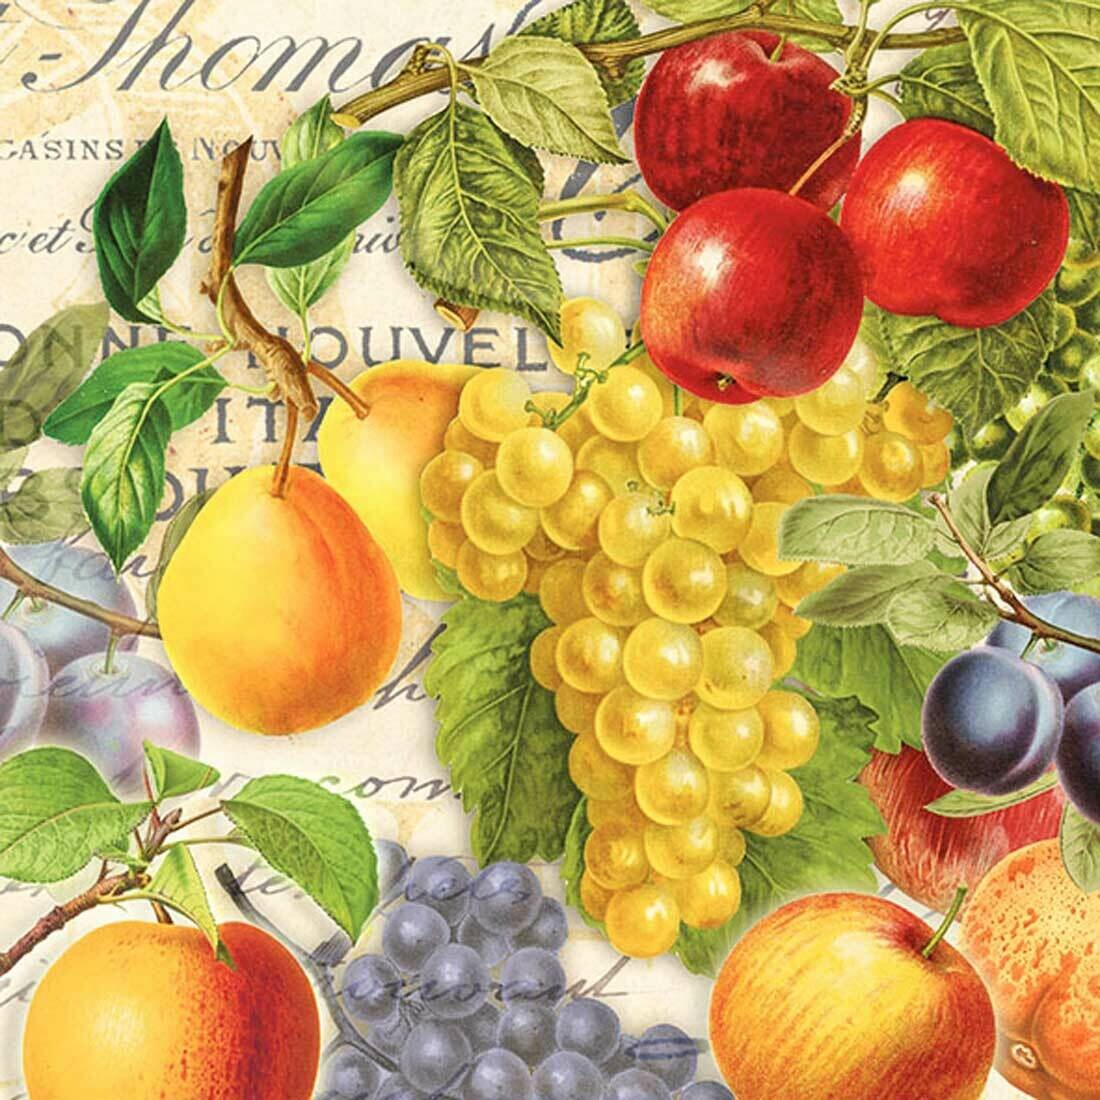 Decoupage Paper Napkins - Fruits 13x13 (1 Sheet)